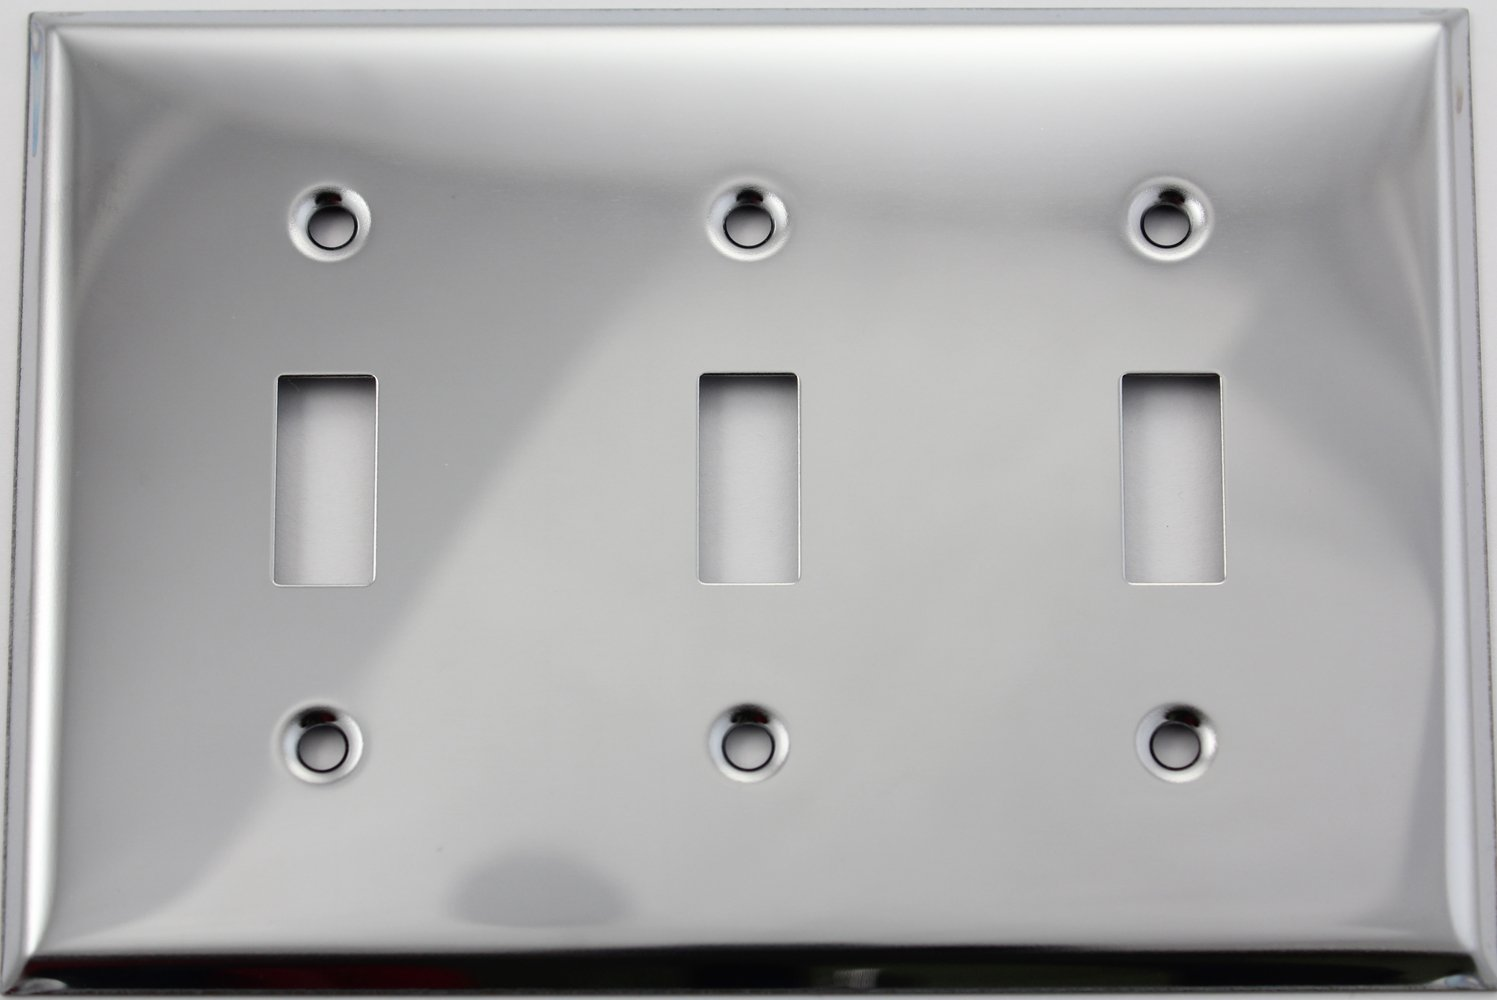 Stainless Steel 3 Gang Wall Plate - 3 Toggle Switches